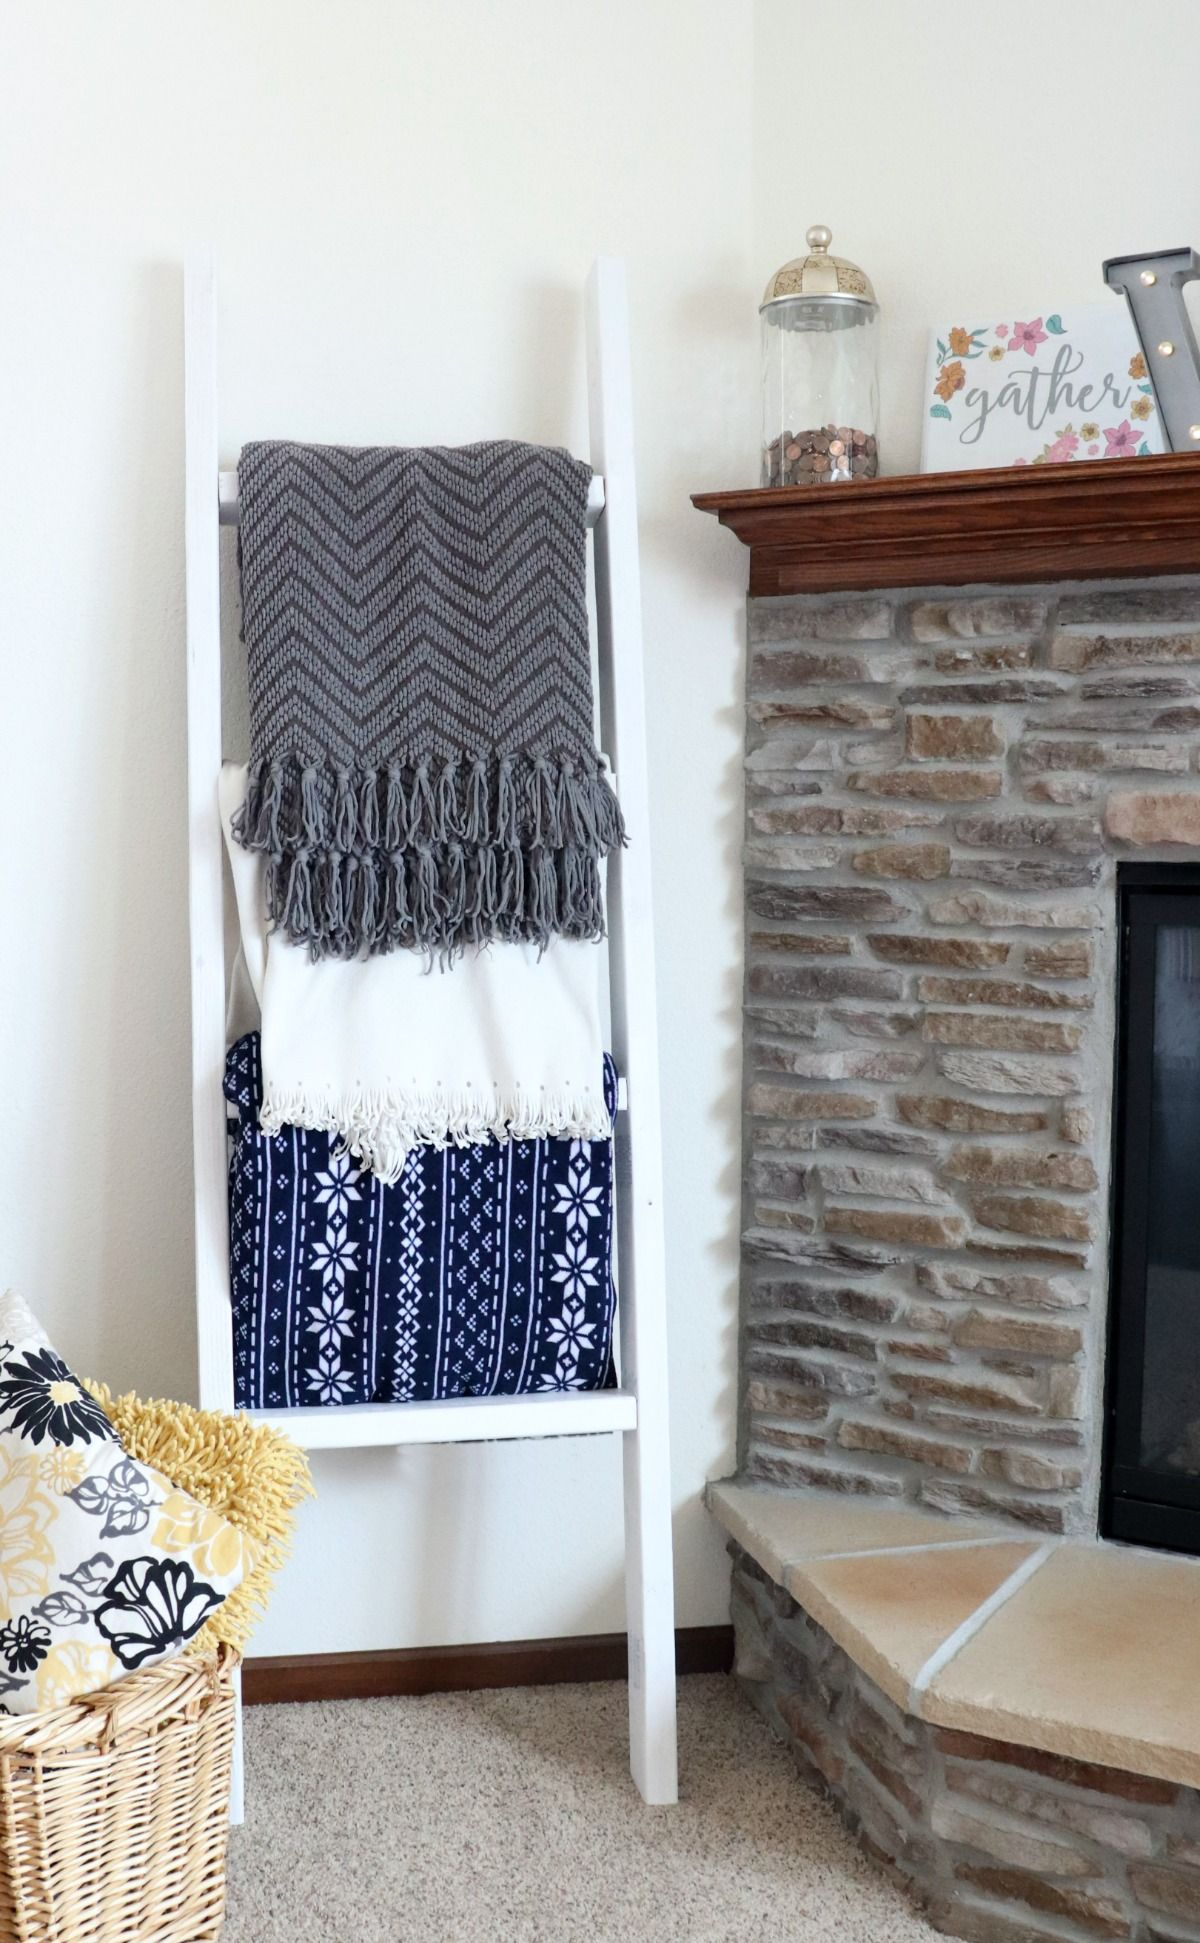 Pinterest Diy Home Decor How To Make A 2x4 Blanket Ladder The Group Board On Pinterest